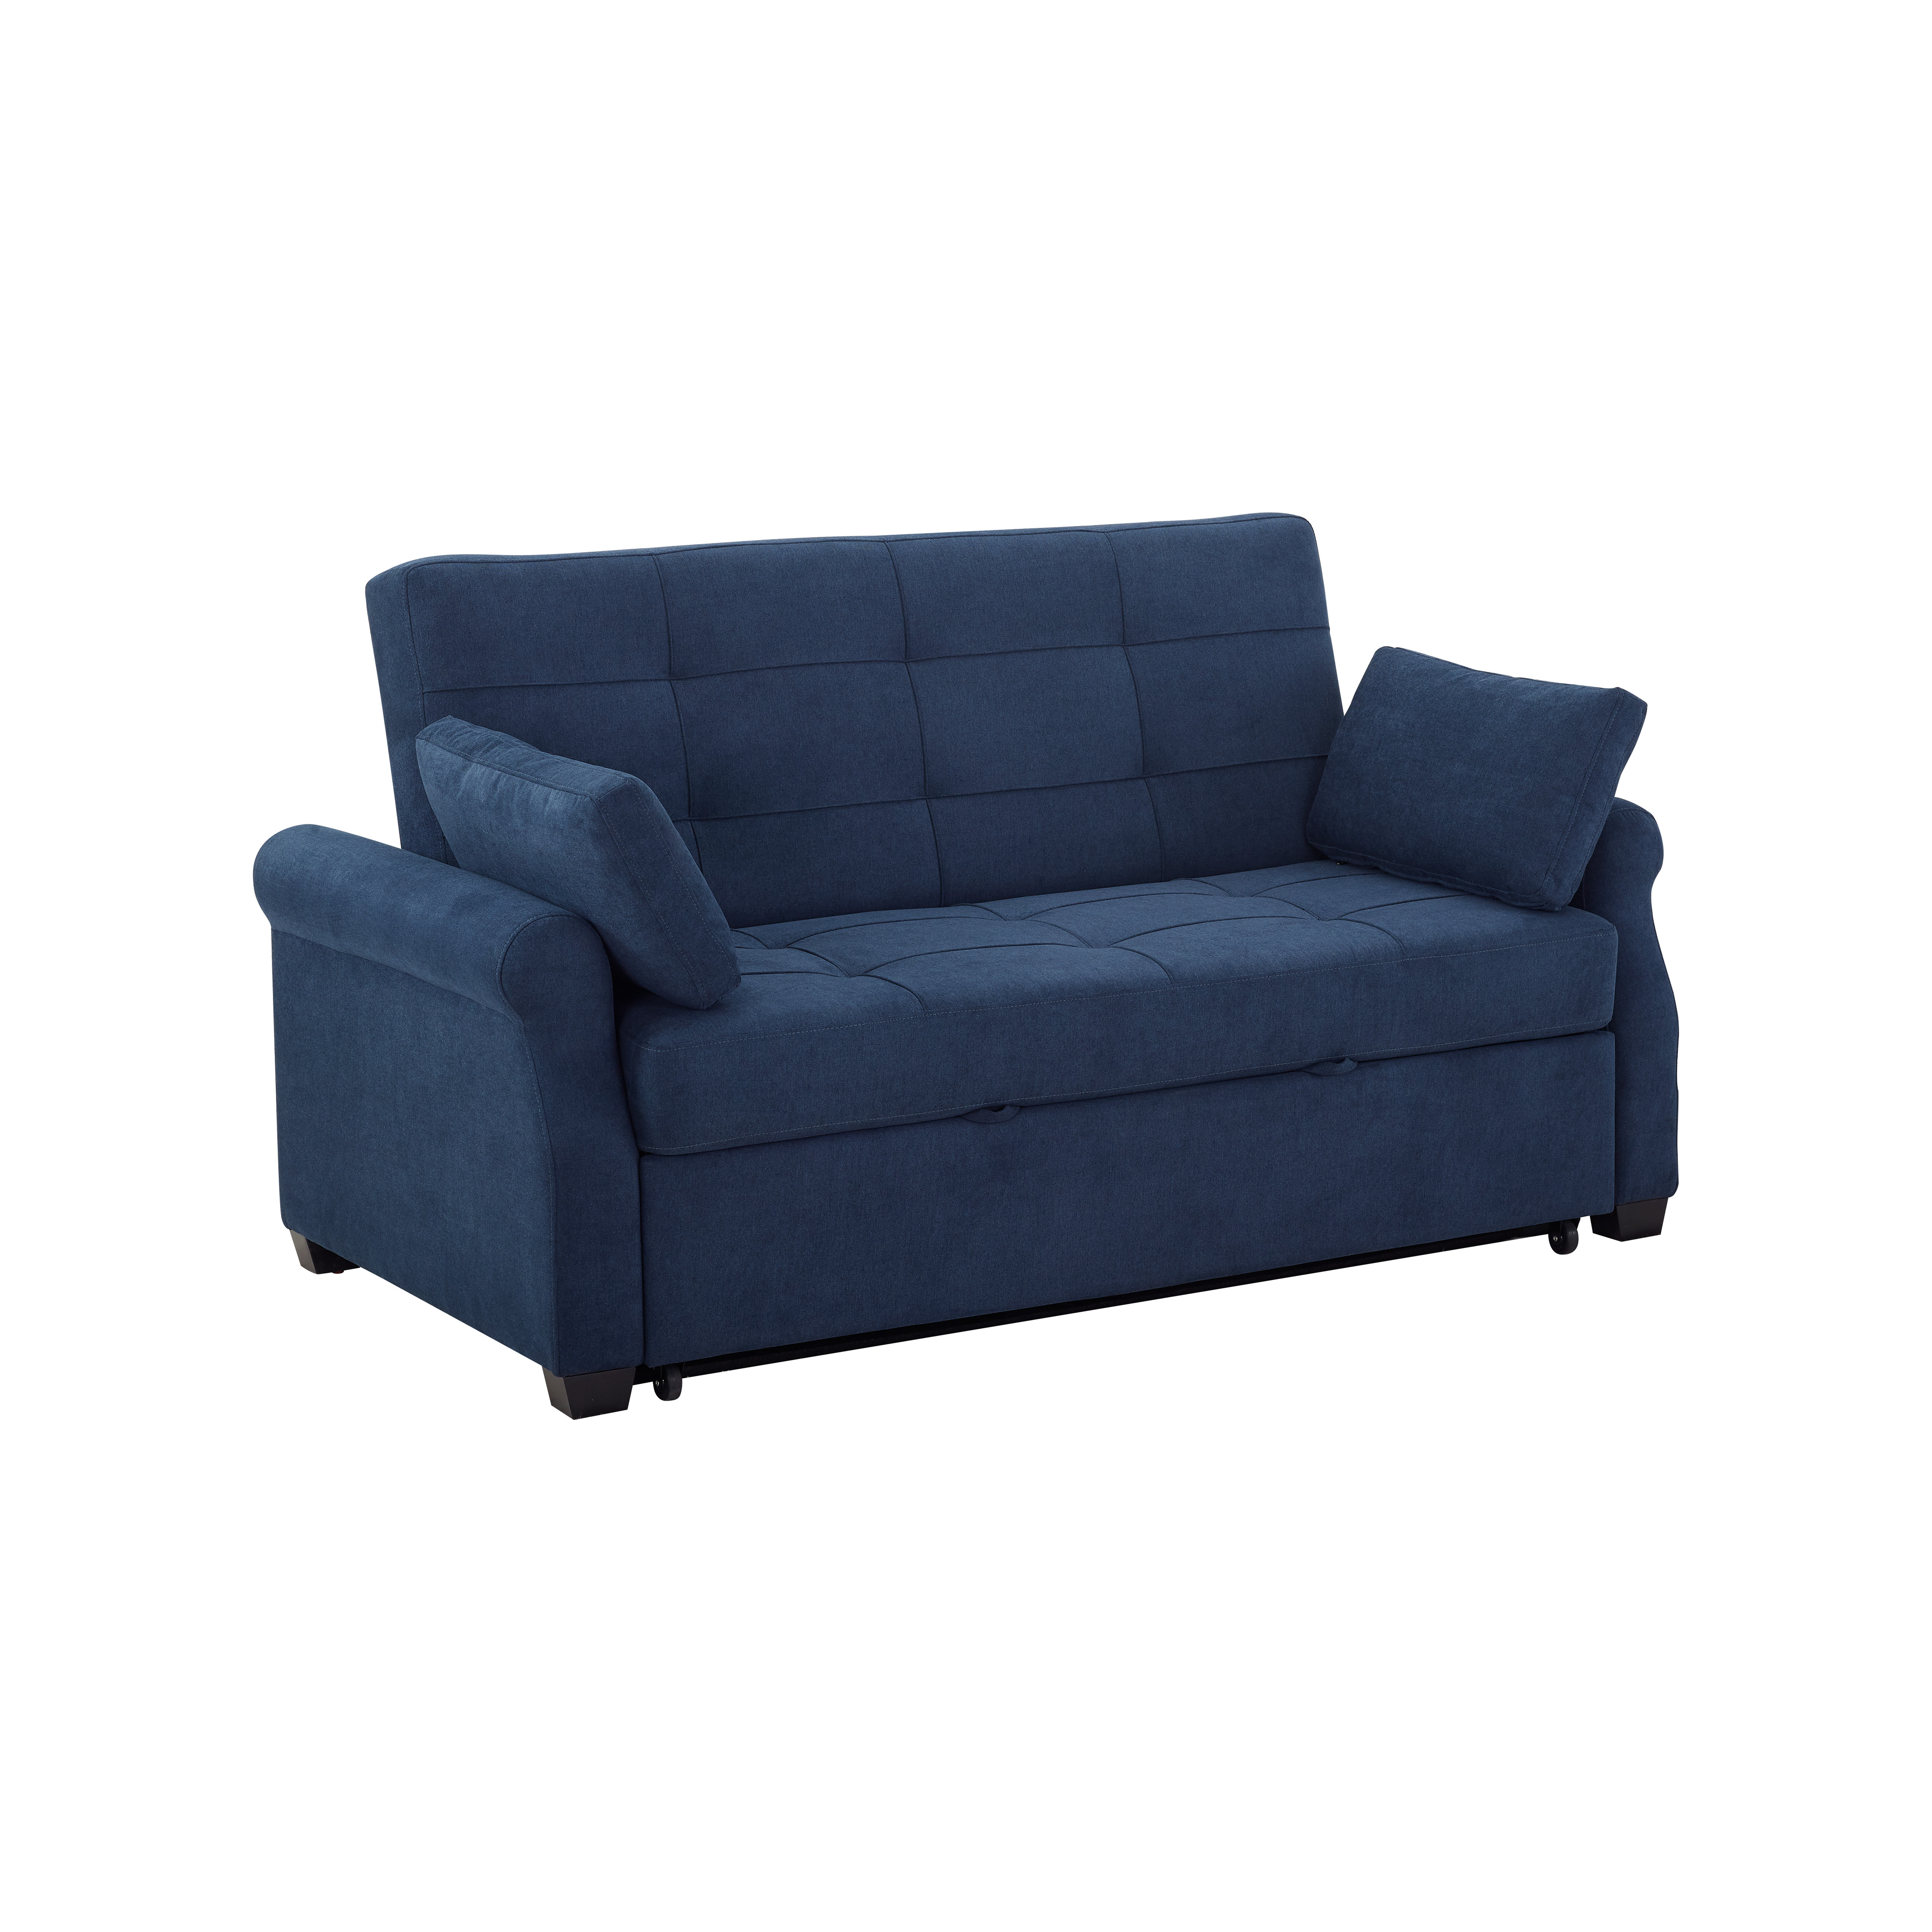 Serta Haiden Sofa Queen Bed With Upholstered Microfiber ...